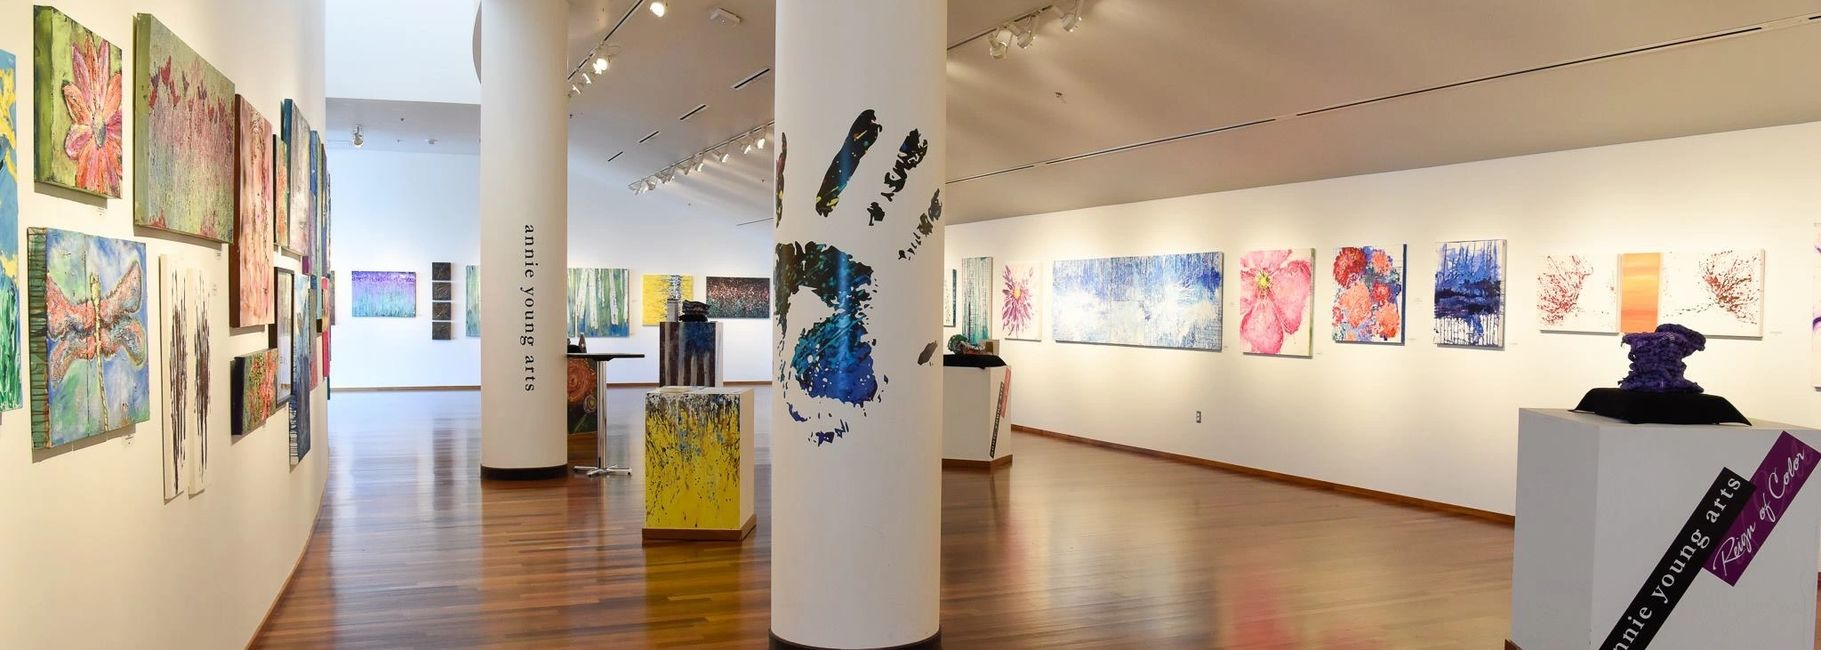 art gallery displaying a colorful array of annie's artwork. painted hand print wraps pillar